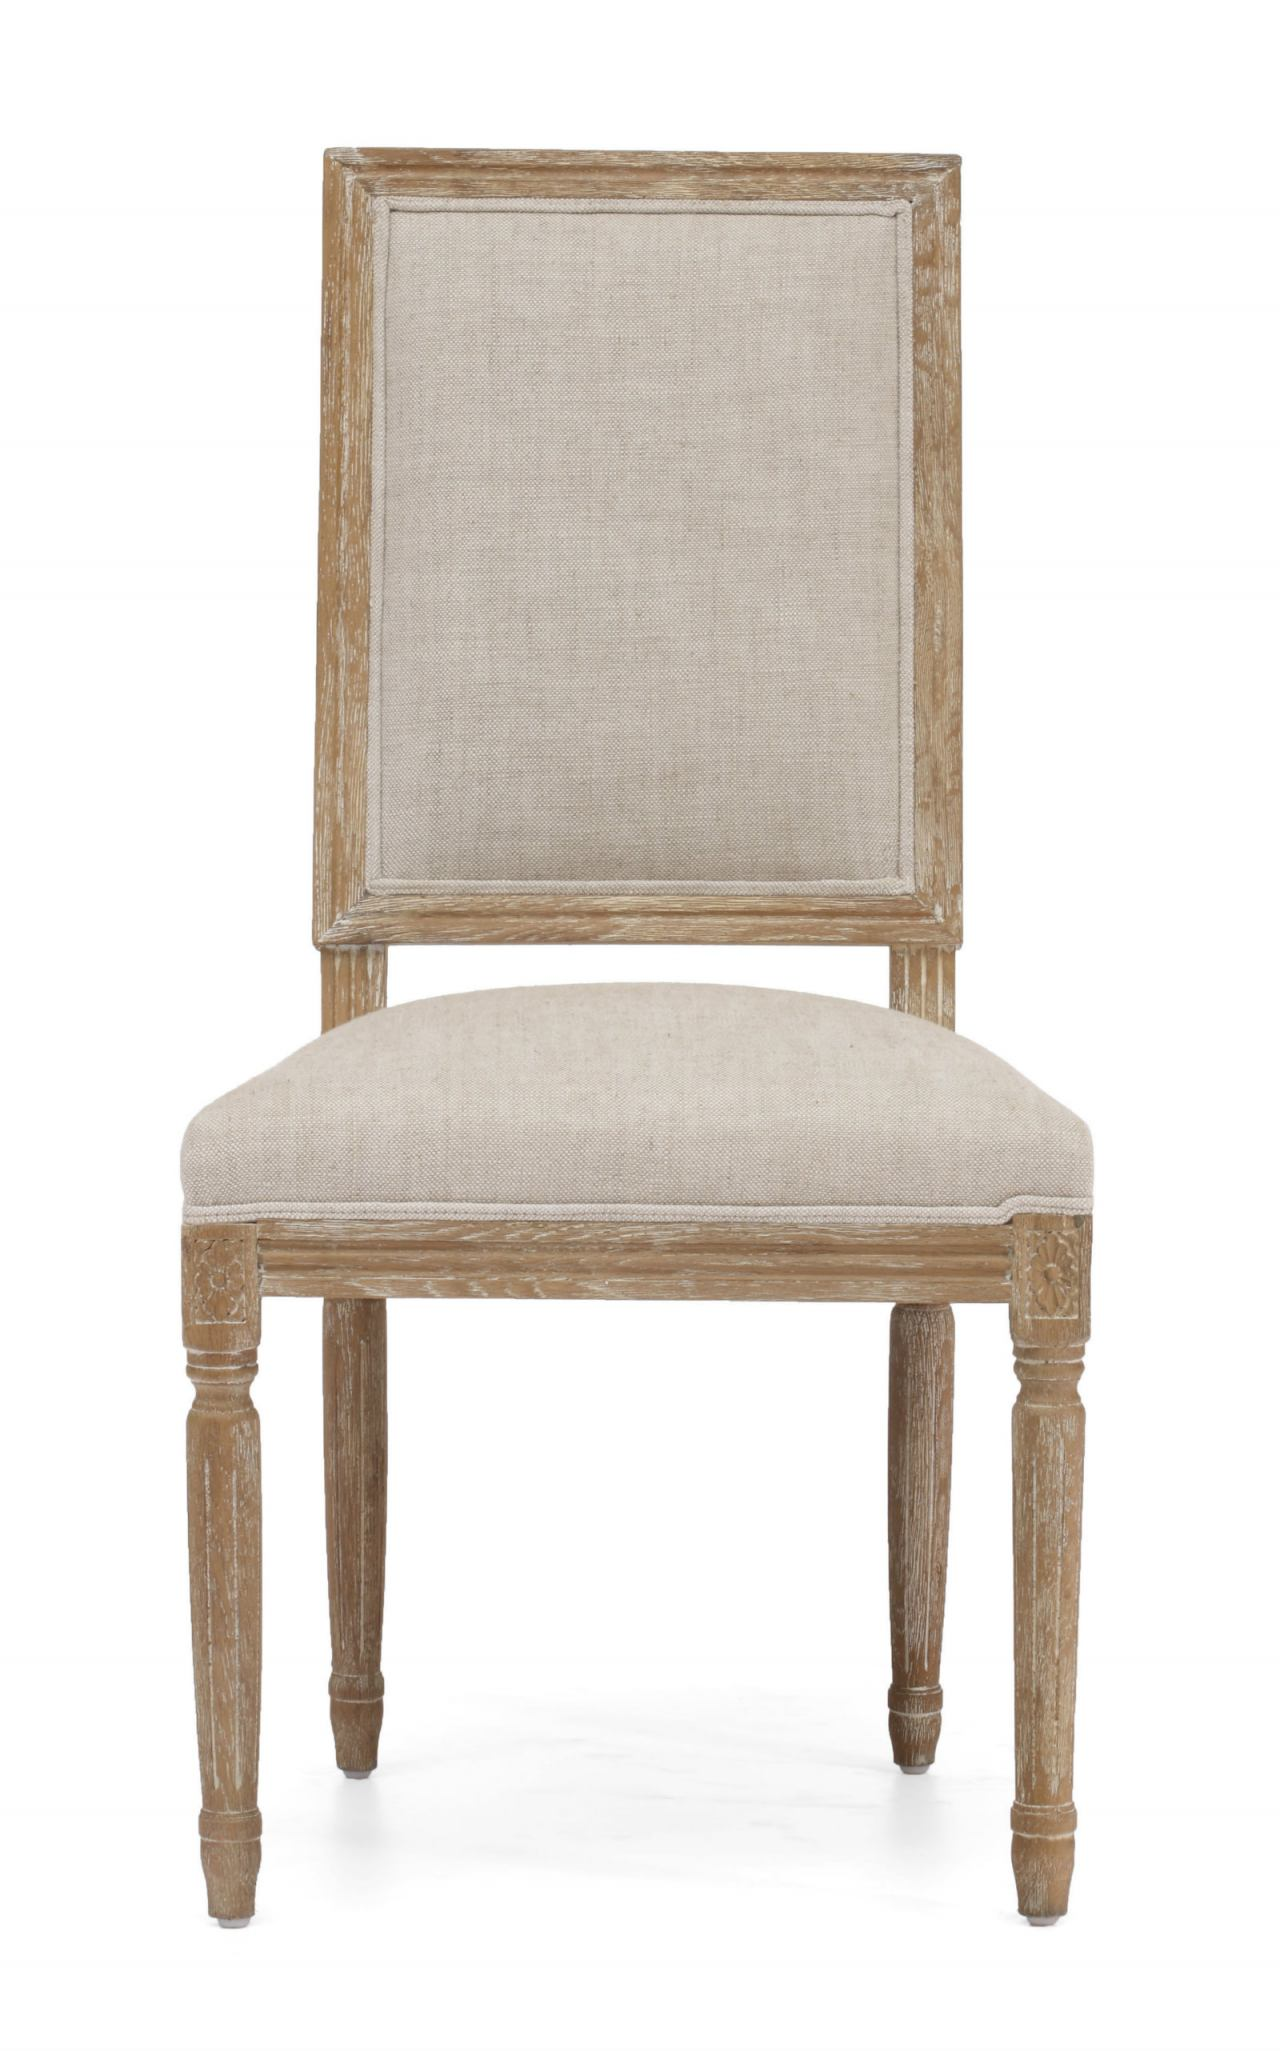 Zuo Modern Cole Valley Chair in Beige (Set of 2) 98074